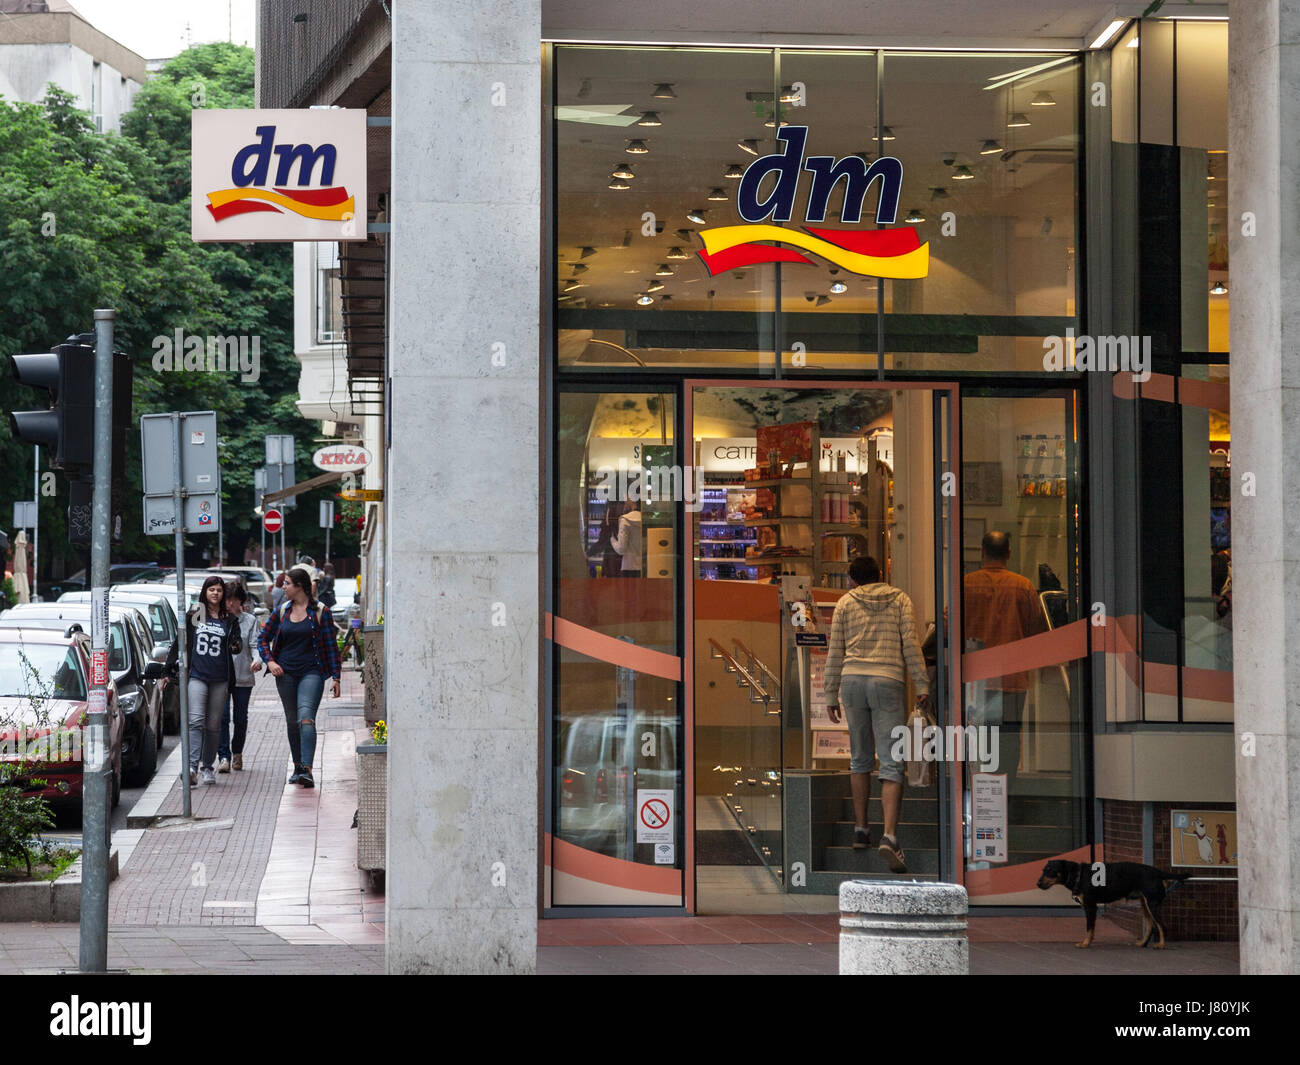 BELGRADE, SERBIA - MAY 25, 2017: DM shop in the center of Belgrade, Serbian capital city. DM-drogerie markt is a - Stock Image